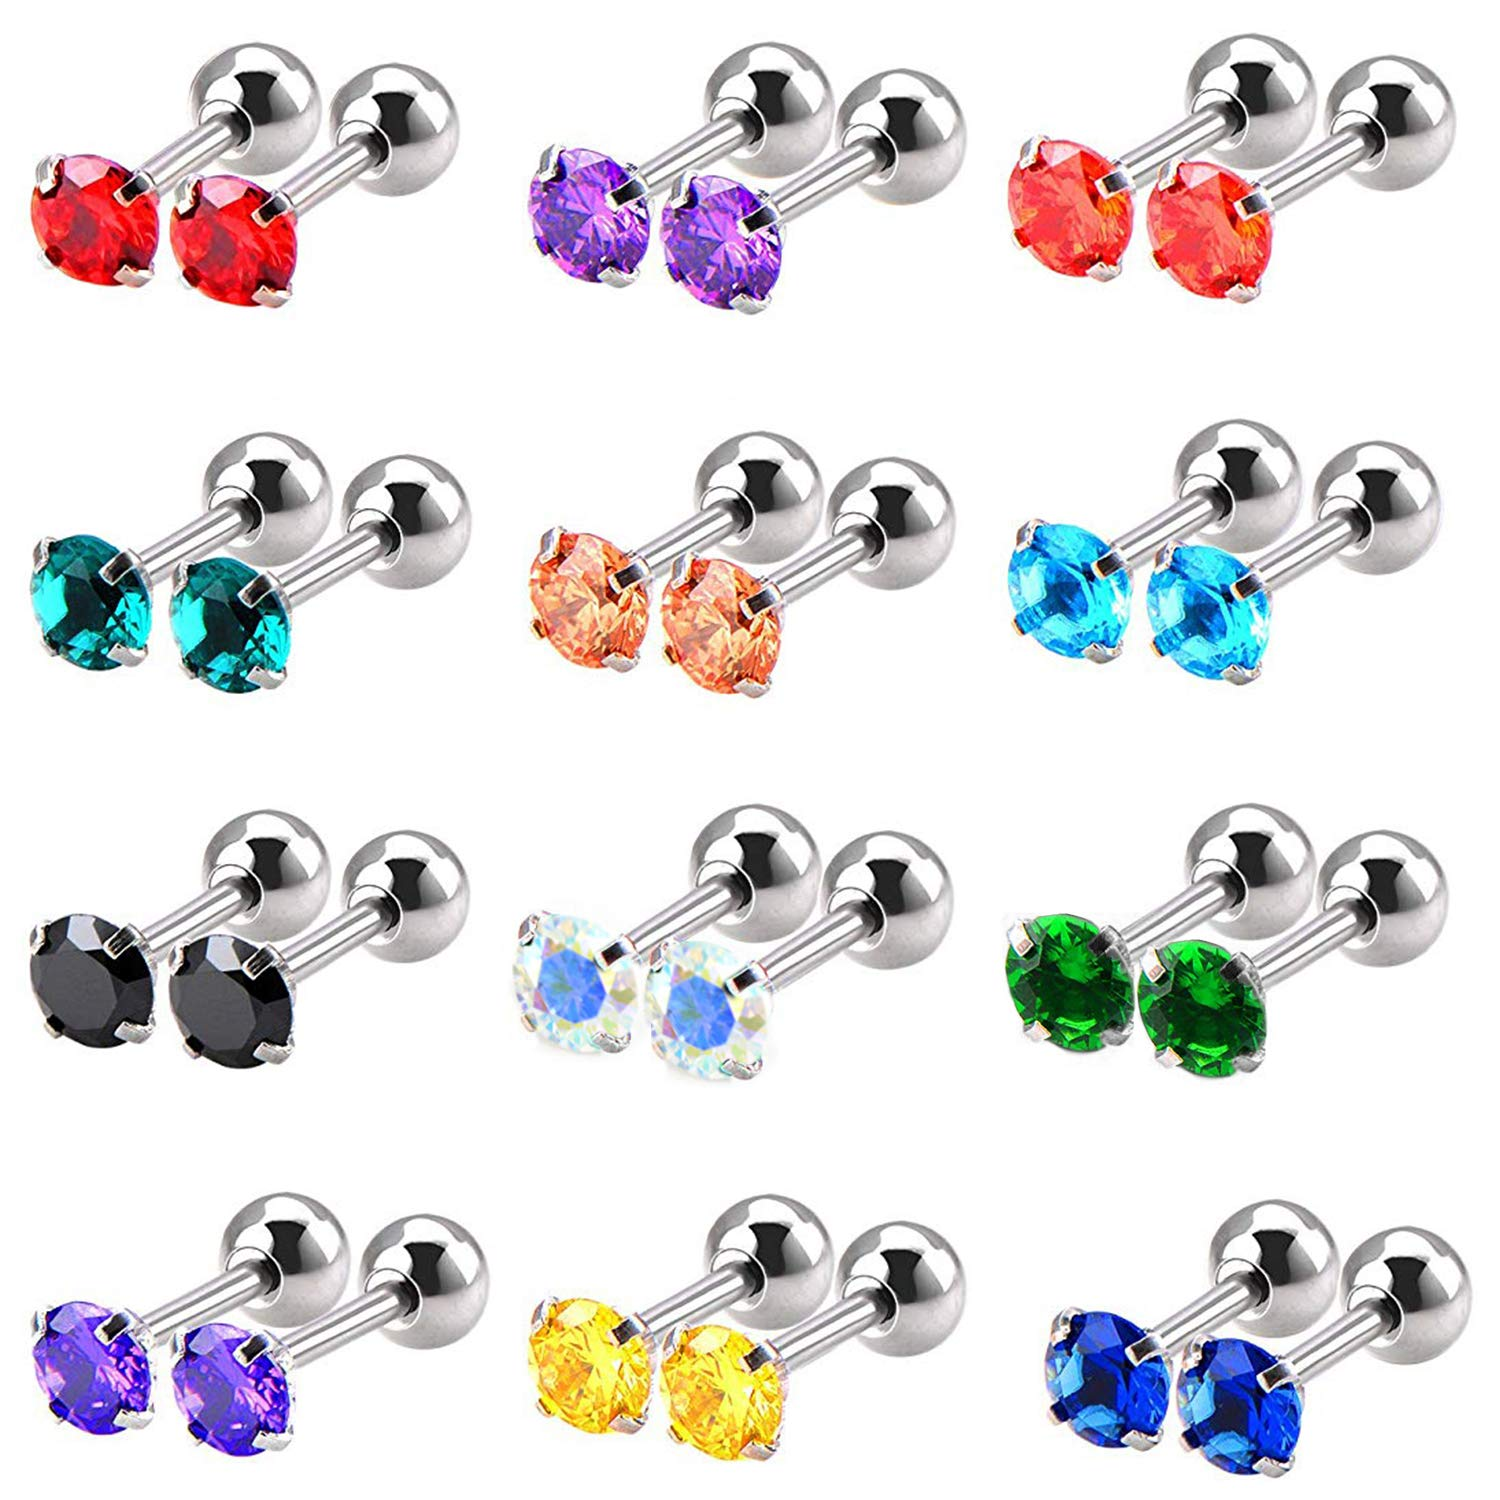 YEELONG 12 Pairs 16G CZ Stainless Steel Barbell Stud Earrings for Men Women Cartilage Helix Earring Body Piercing Jewelry,12 Colors by YEELONG